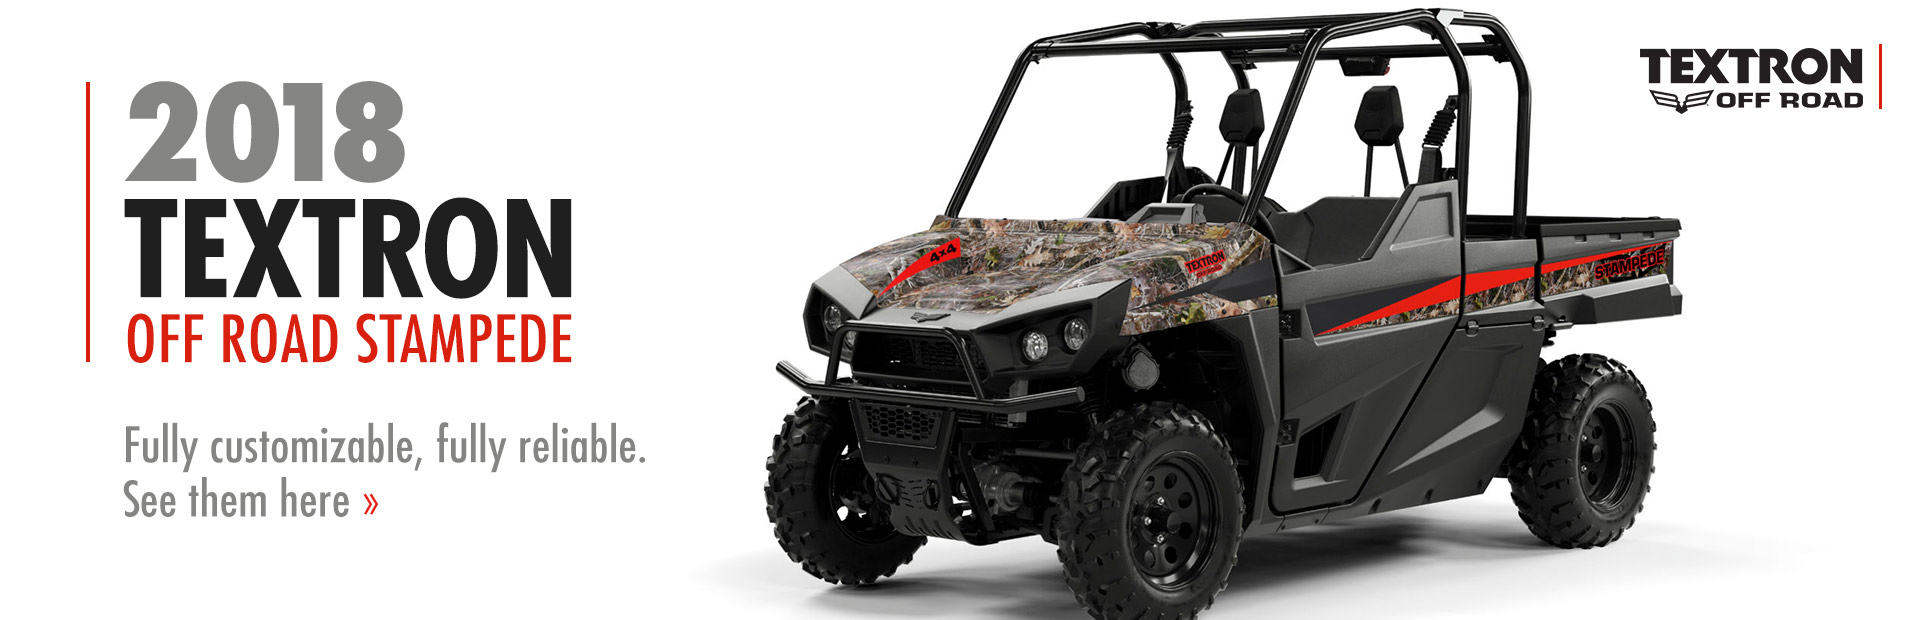 2018 Textron Off Road Stampede: Click here to view the models!